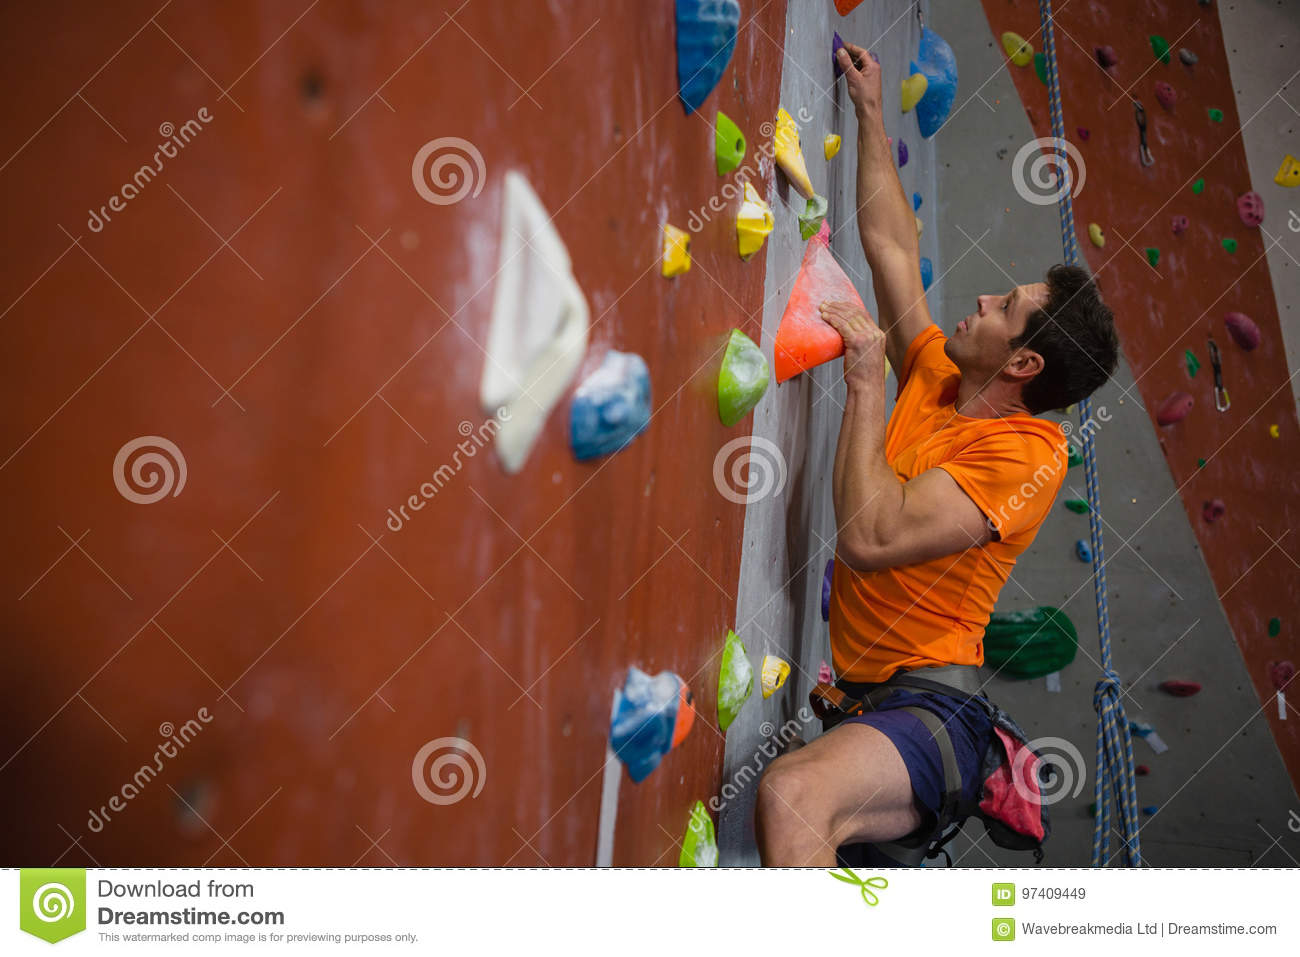 Download Man wall climbing in gym stock image. Image of male, exercise - 97409449